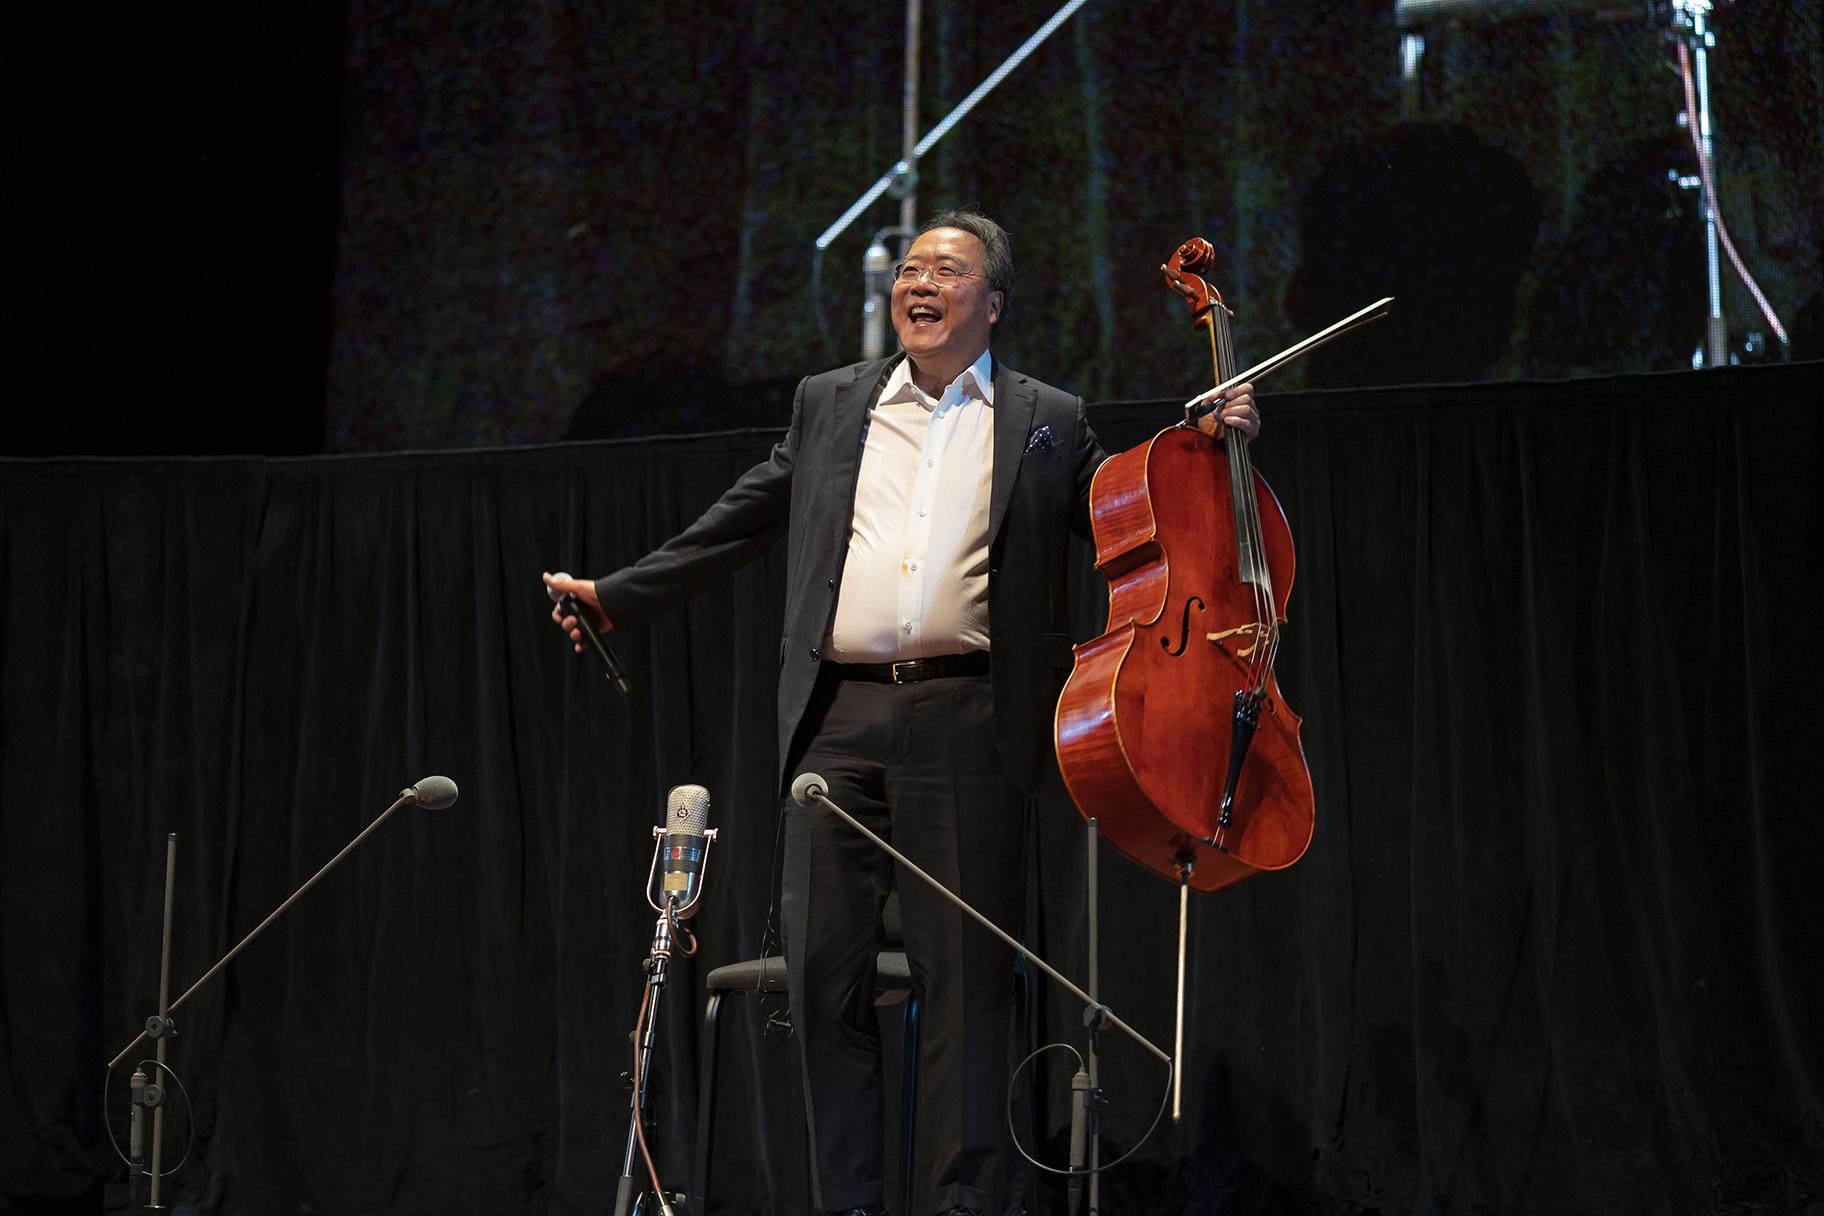 Yo-Yo Ma acknowledges the audience following the performance of J. S. Bach's complete Cello Suites in a free concert at Millennium Park's Jay Pritzker Pavilion on June 20, 2019. (Credit: Todd Rosenberg)